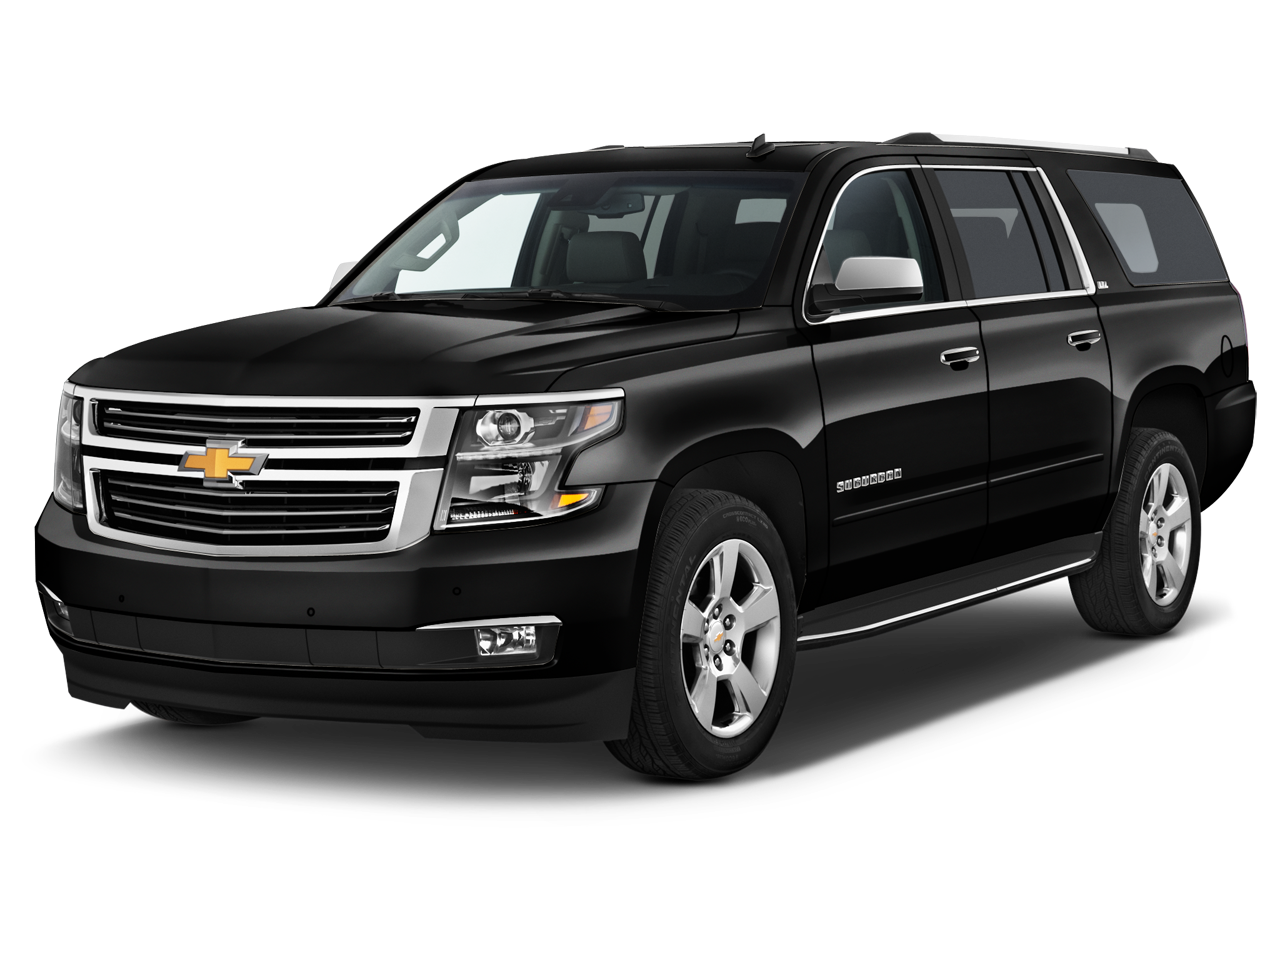 2016 chevrolet suburban available colors autos post. Black Bedroom Furniture Sets. Home Design Ideas